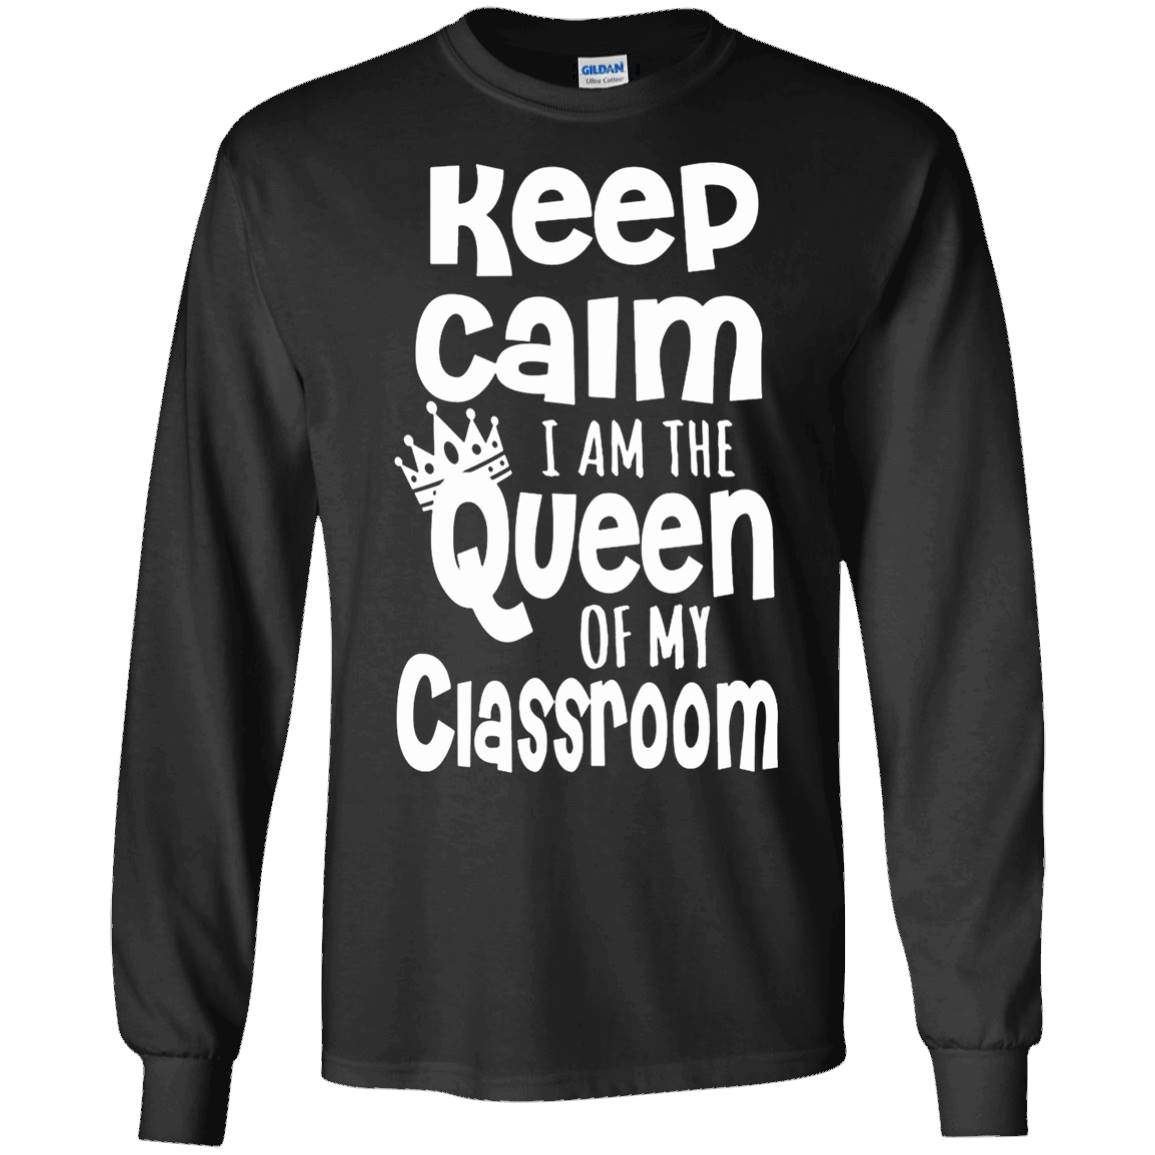 Keep Calm – I Am The Queen Of My Classroom T-Shirt – Long Sleeve Tee